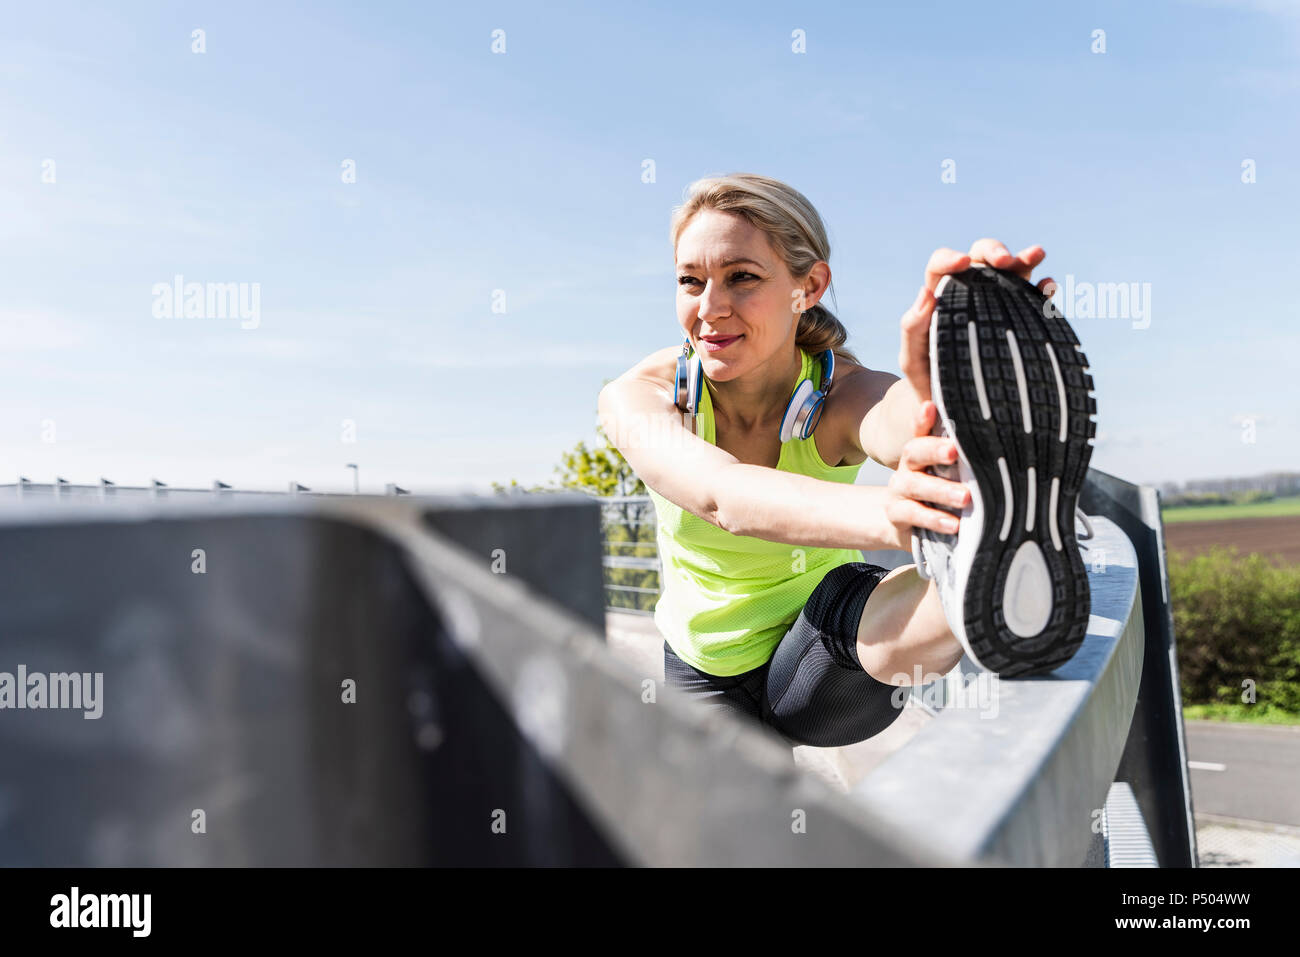 Woman jogging in the city, taking a break, stretching Stock Photo